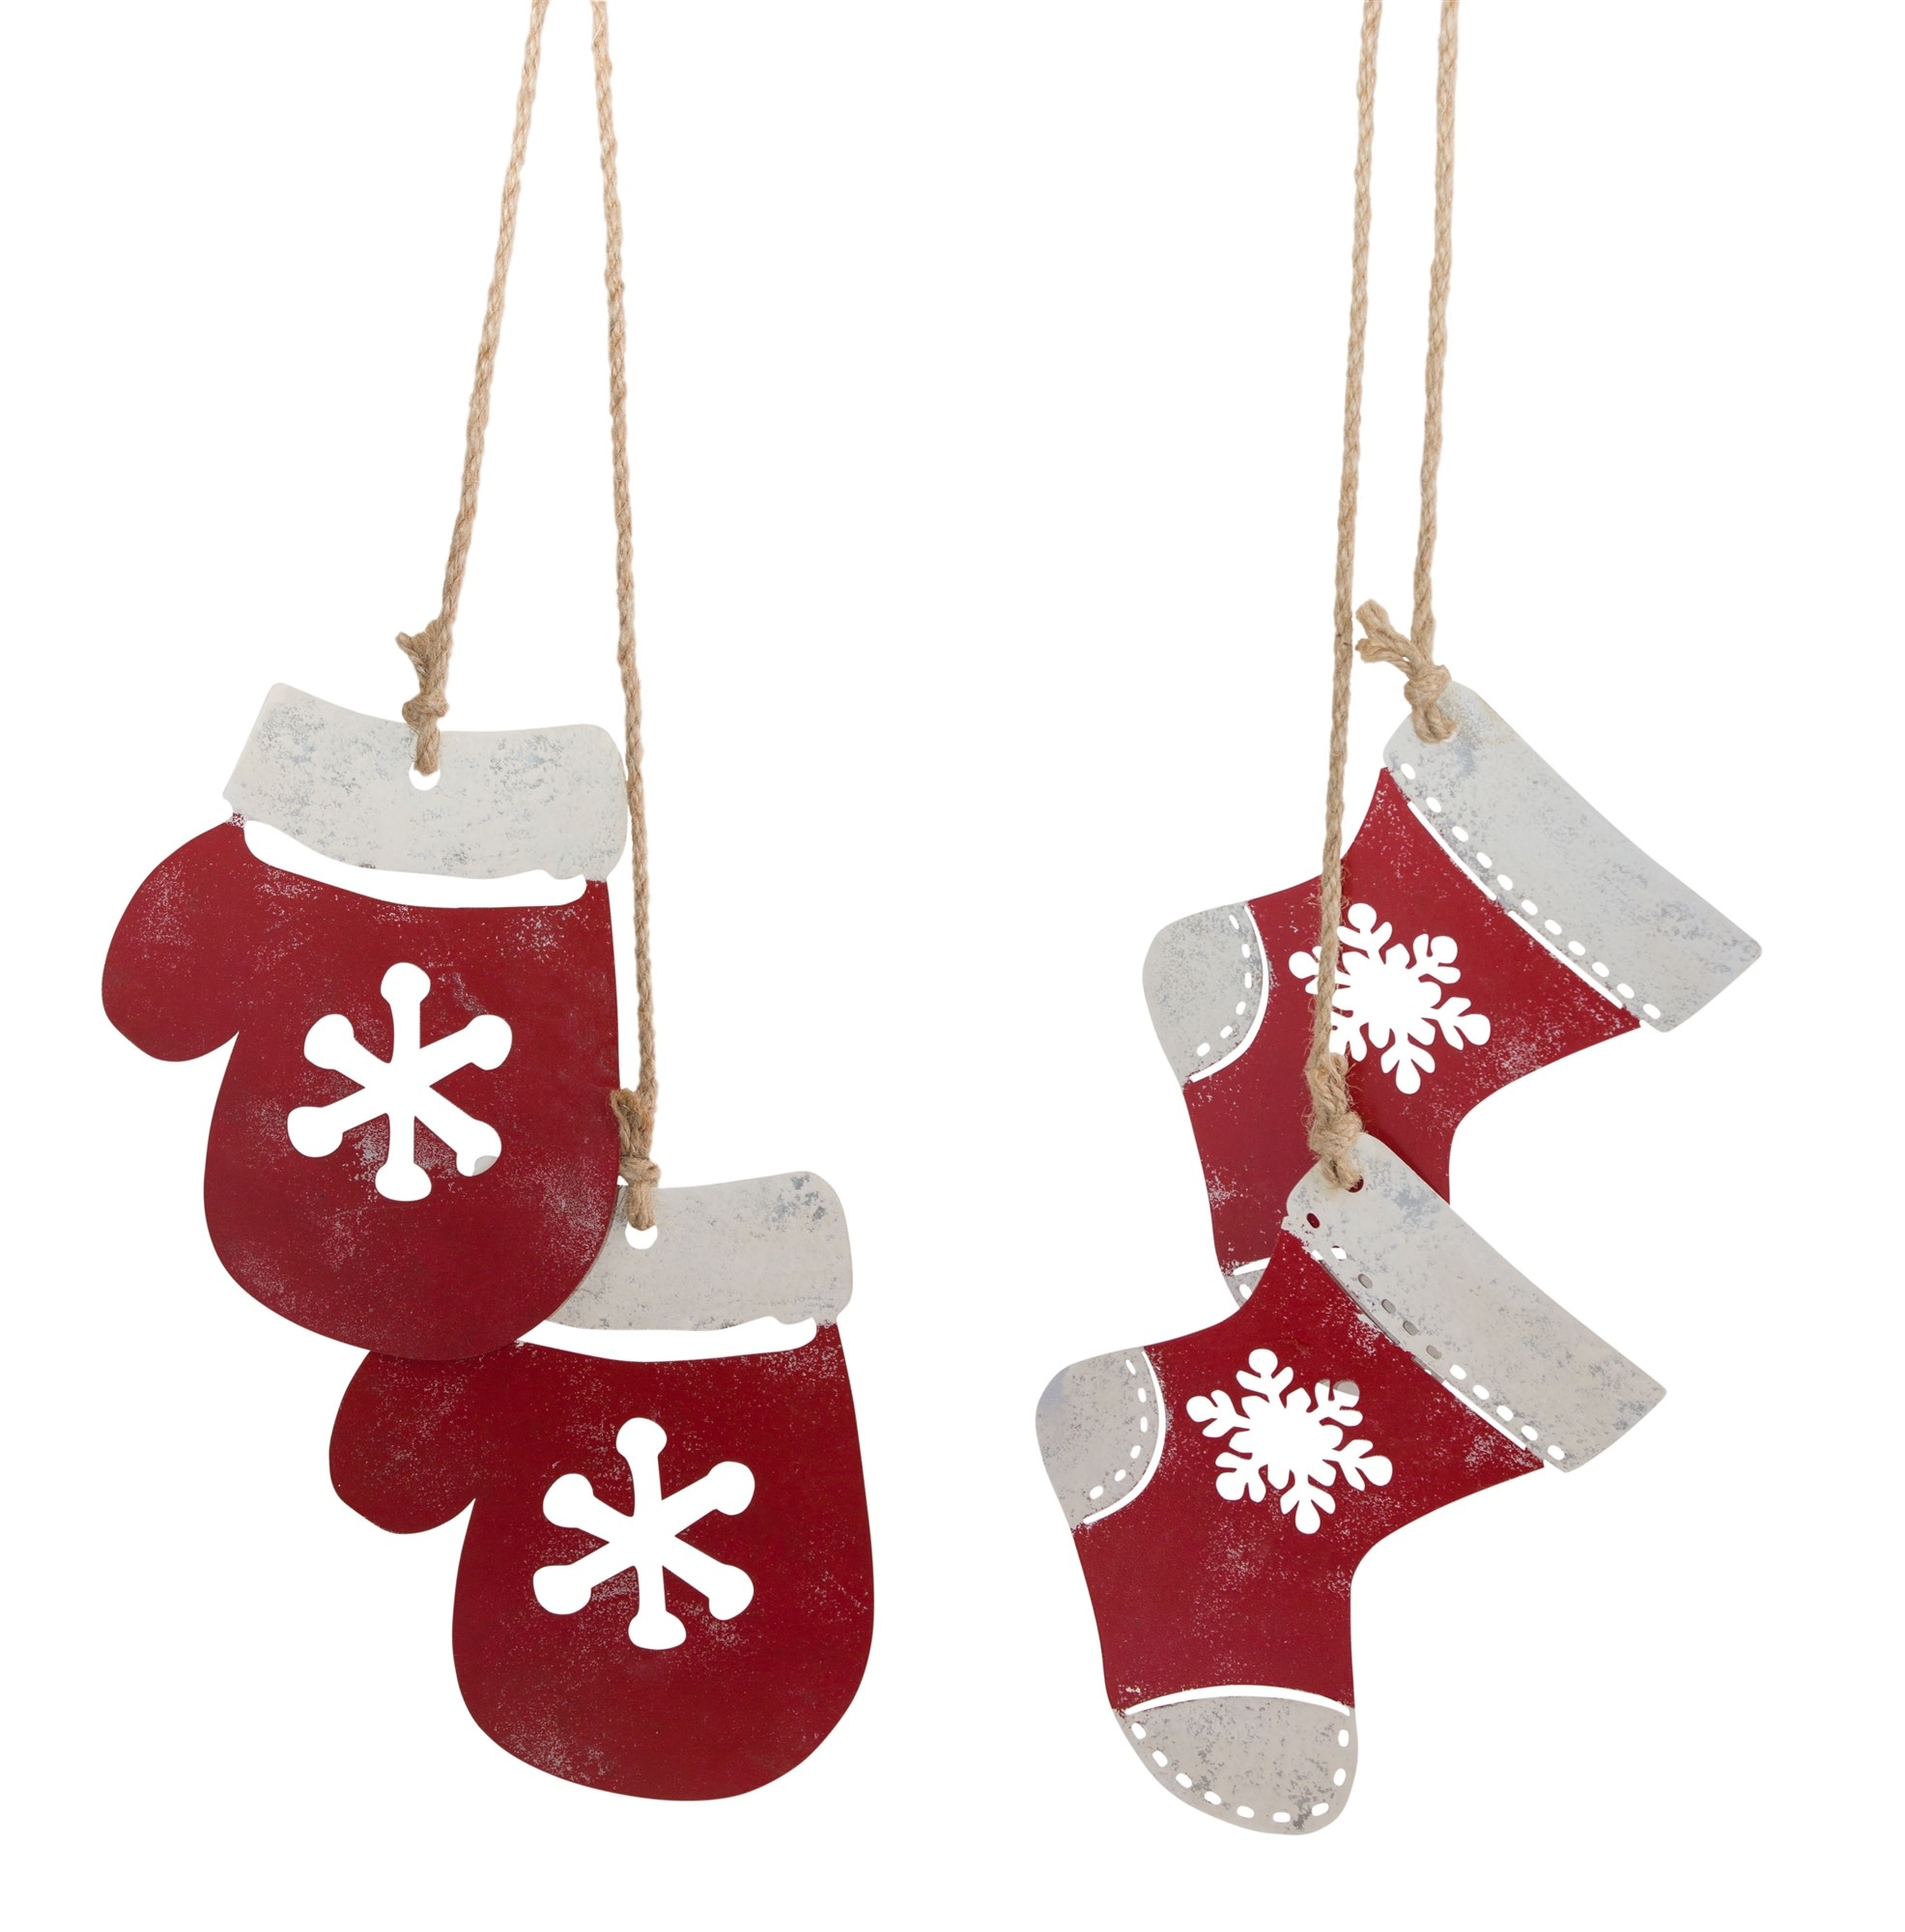 STOCKING AND MITTEN METAL ORNAMENTS